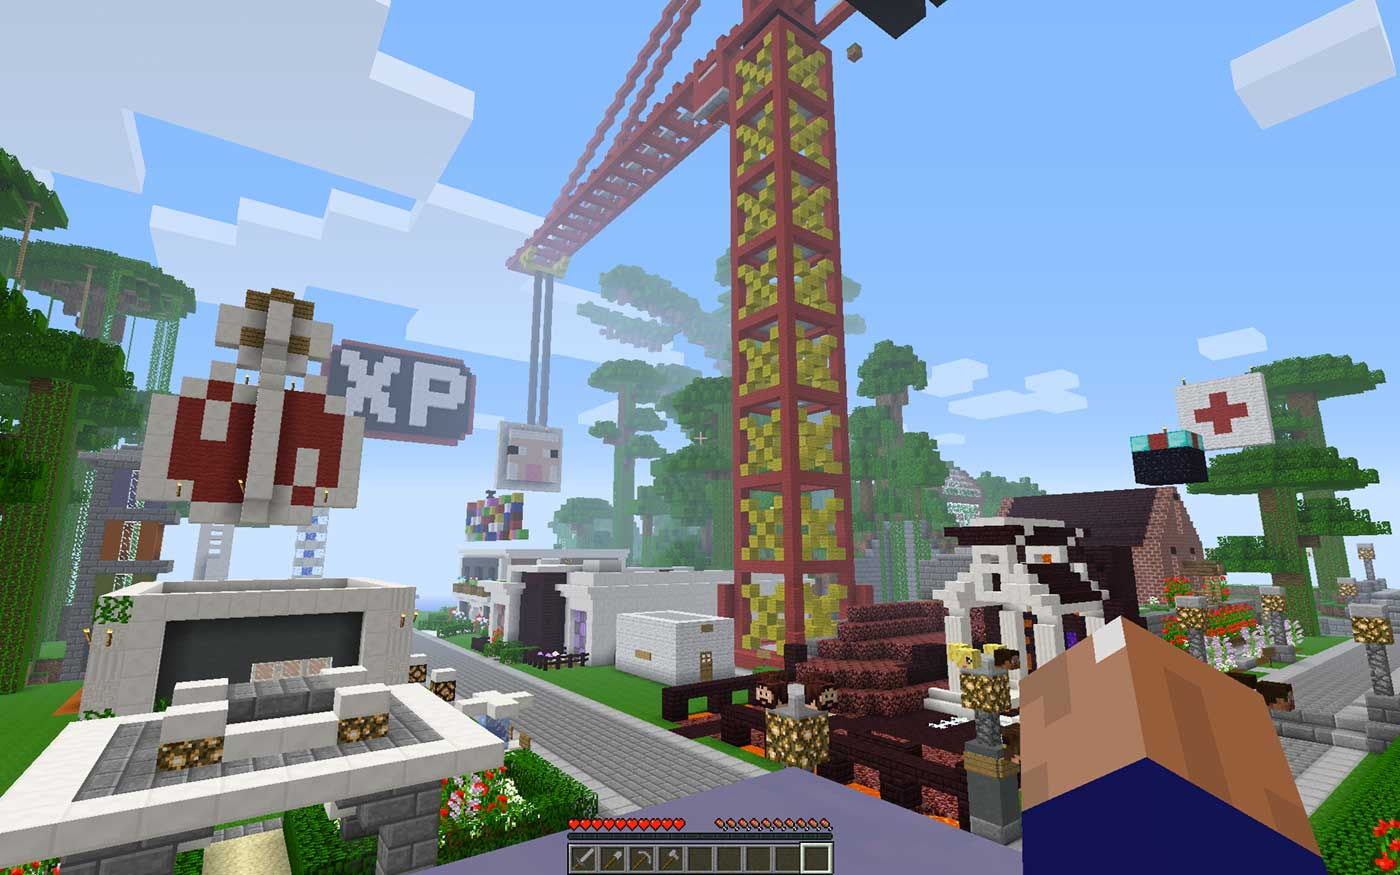 FamilyFriendly Minecraft Servers Where Your Kid Can Play Safely - Minecraft spiele fur ps3